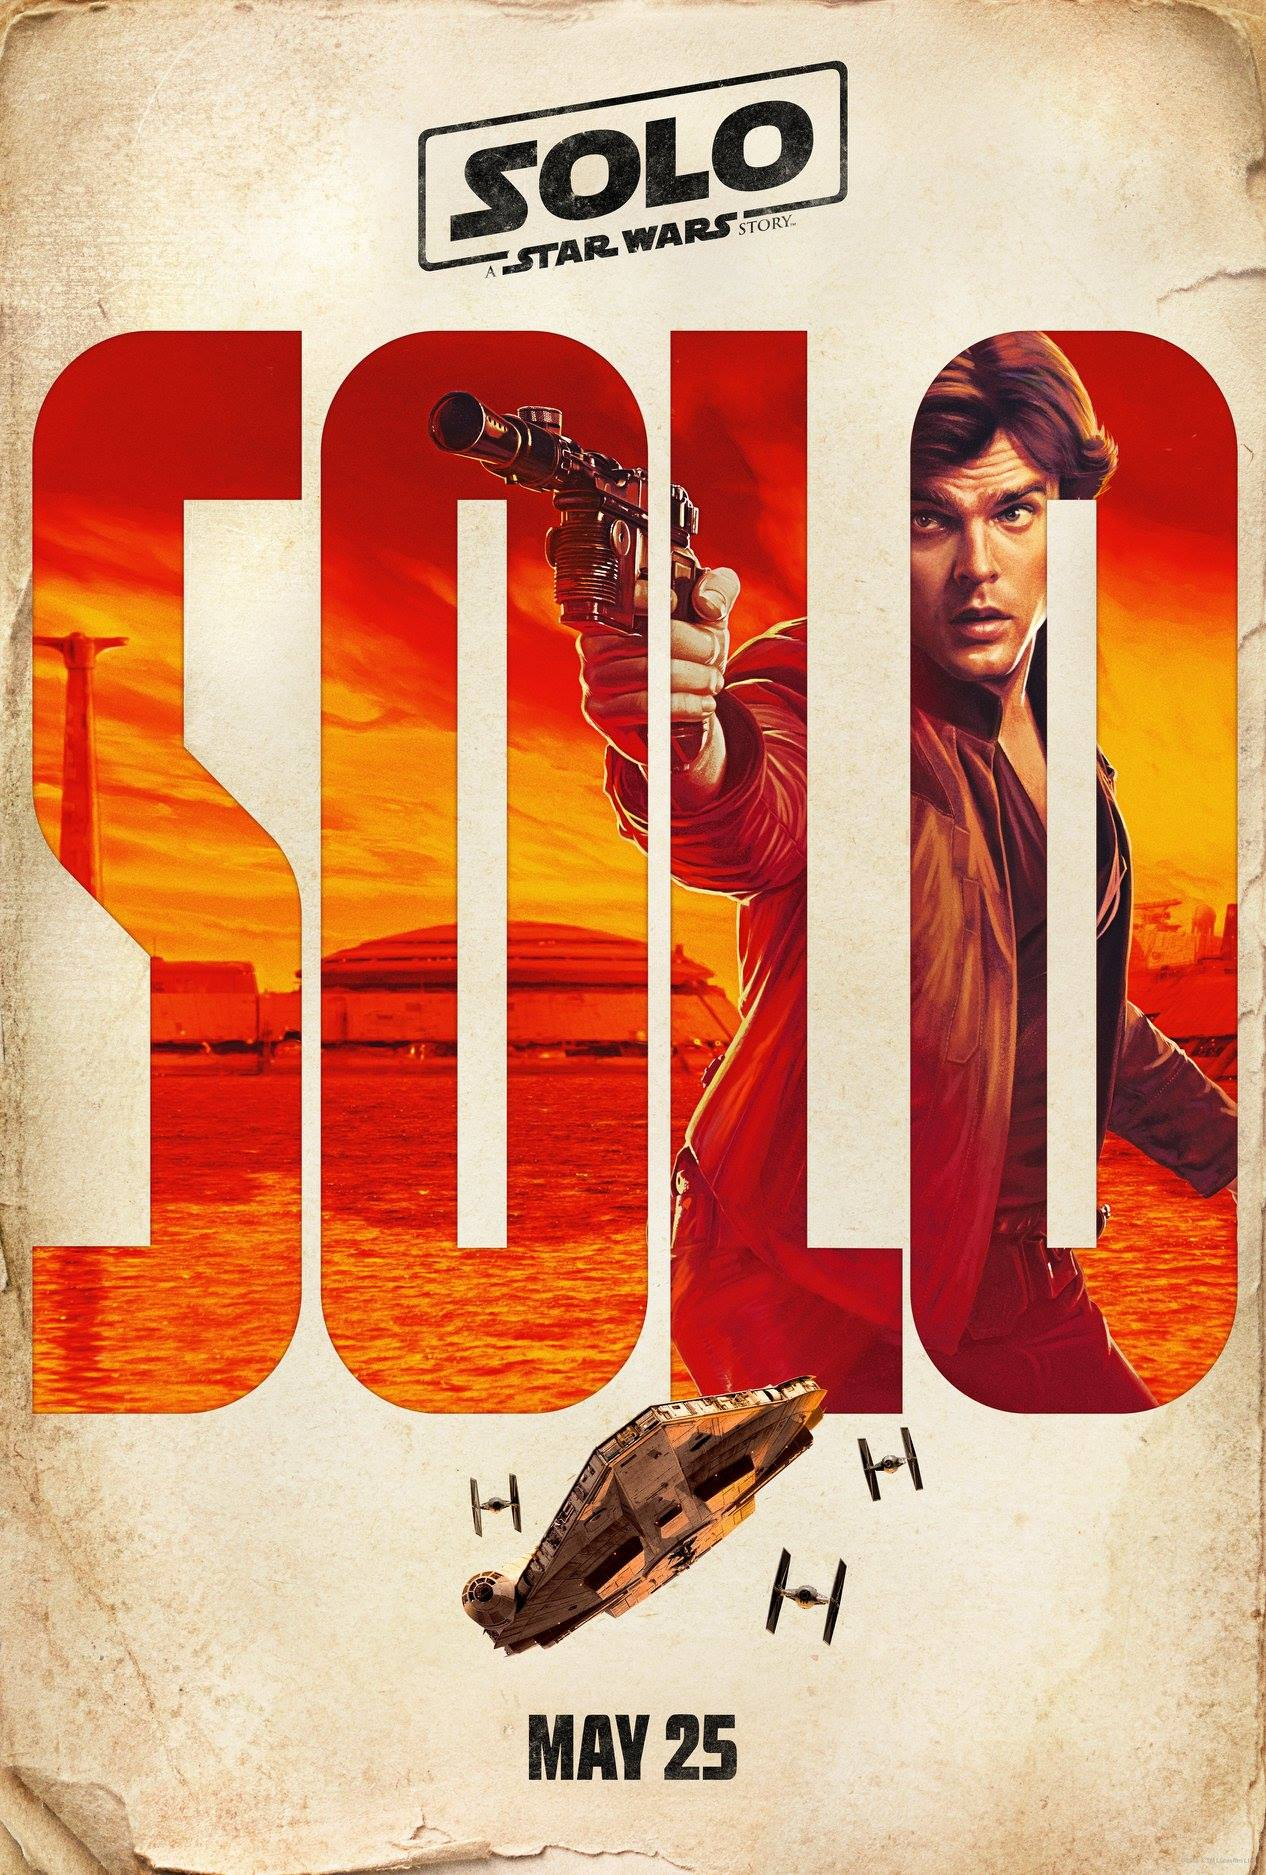 solo 1 Solo: A Star Wars Story trailer premieres on Good Morning America: Watch